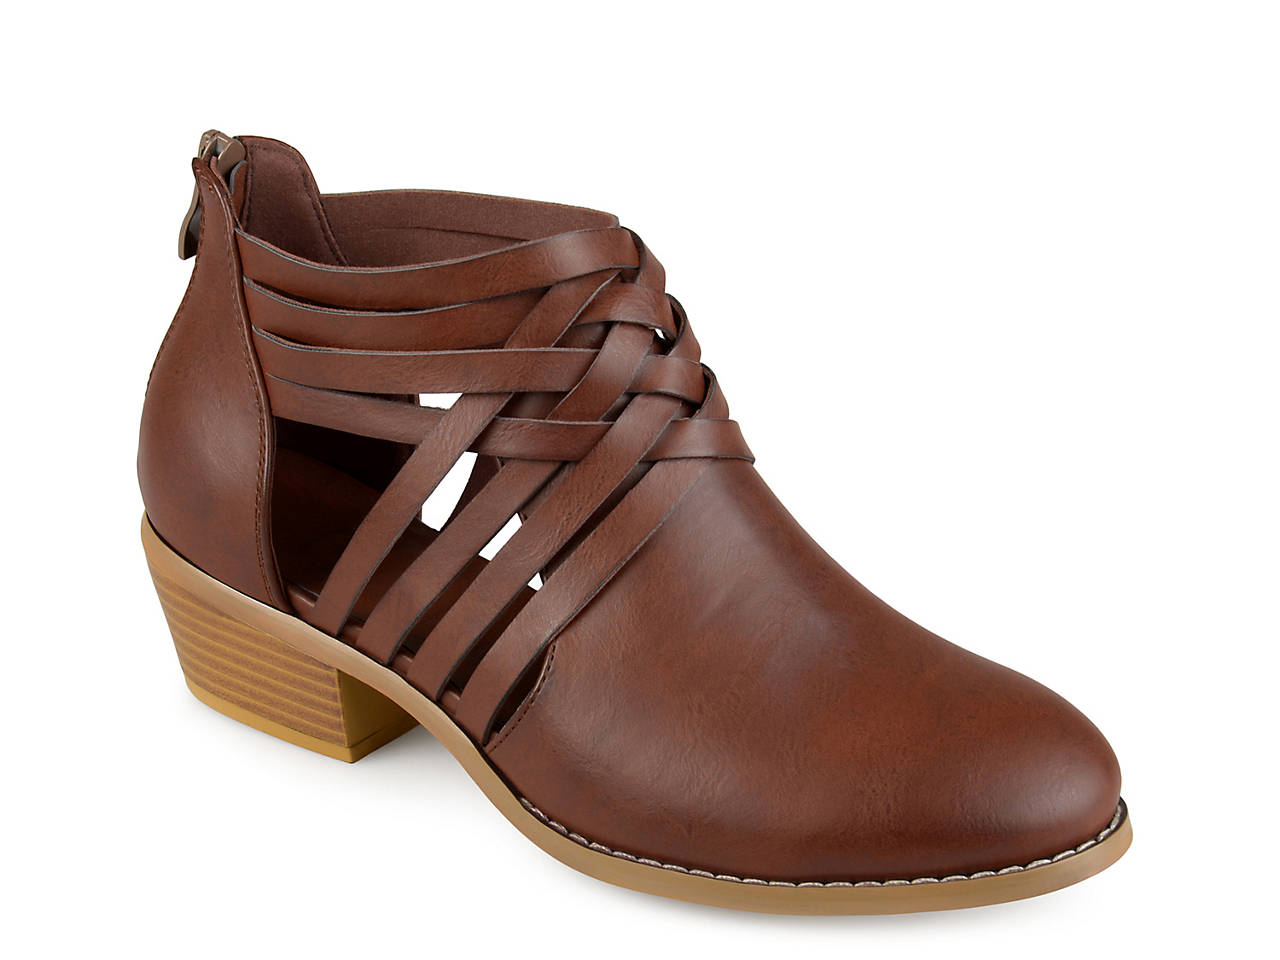 6159c93706009 Journee Collection Thelma Bootie Women s Shoes